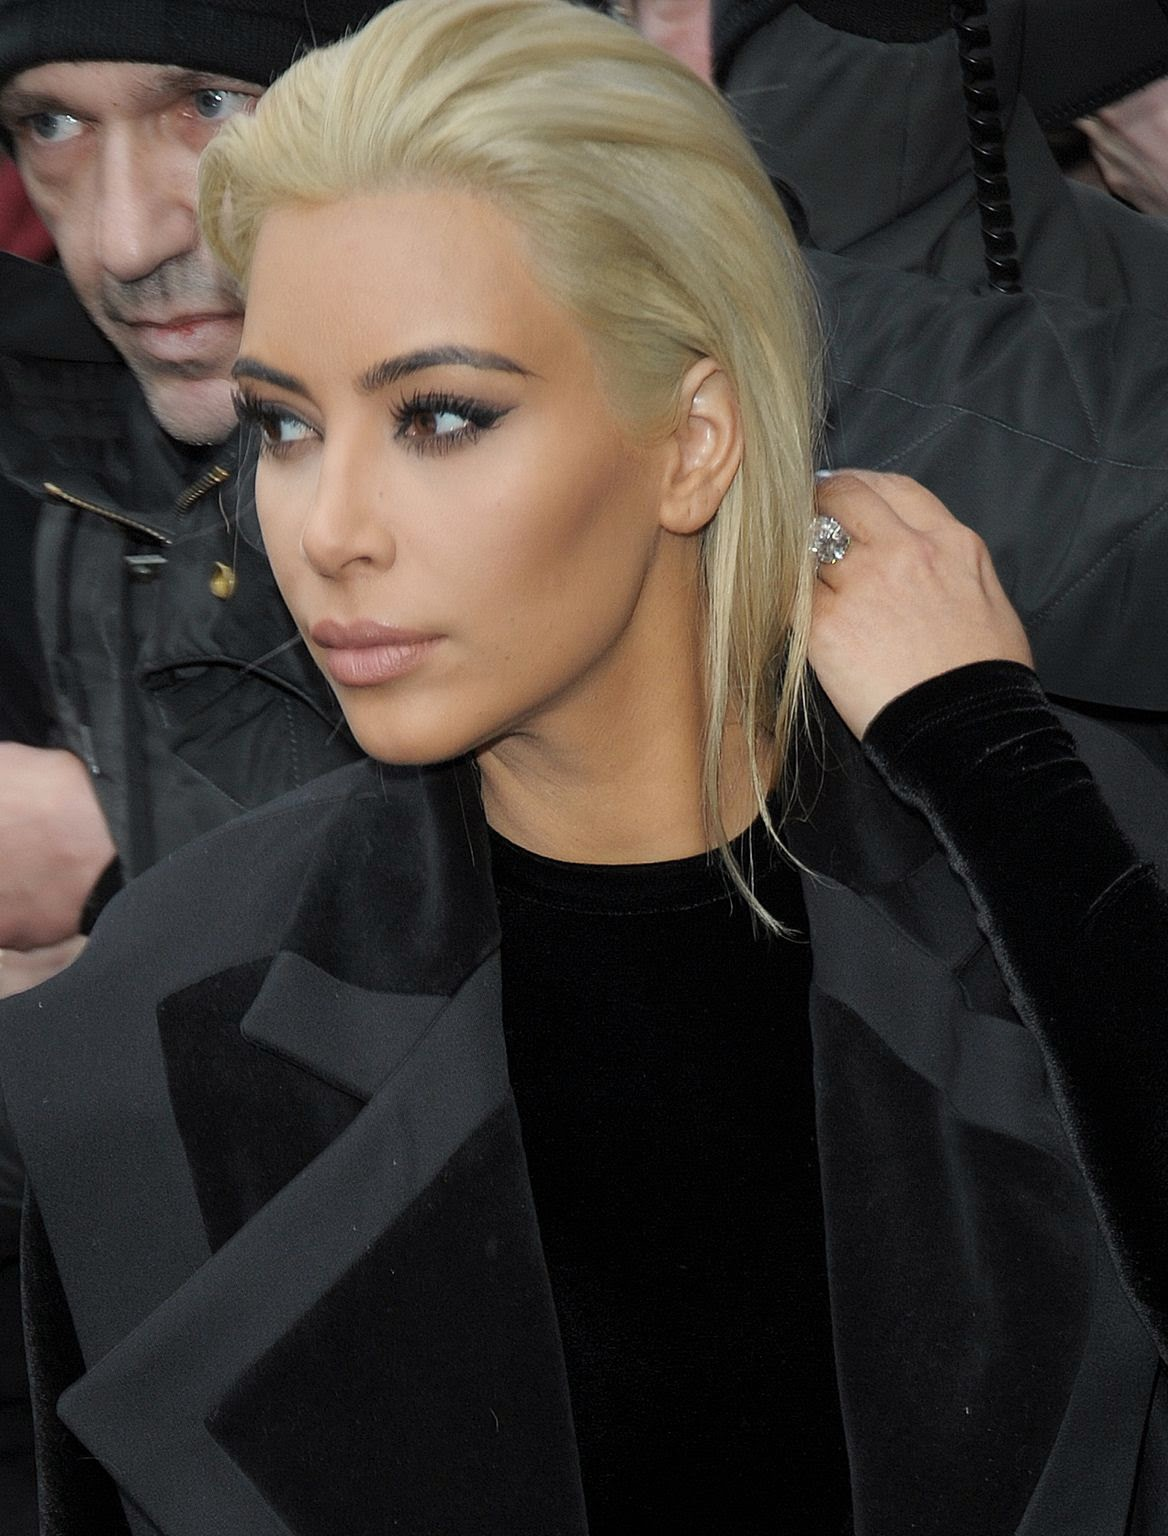 Kim Kardashian shows off new platinum blonde hair colour out and about in Paris